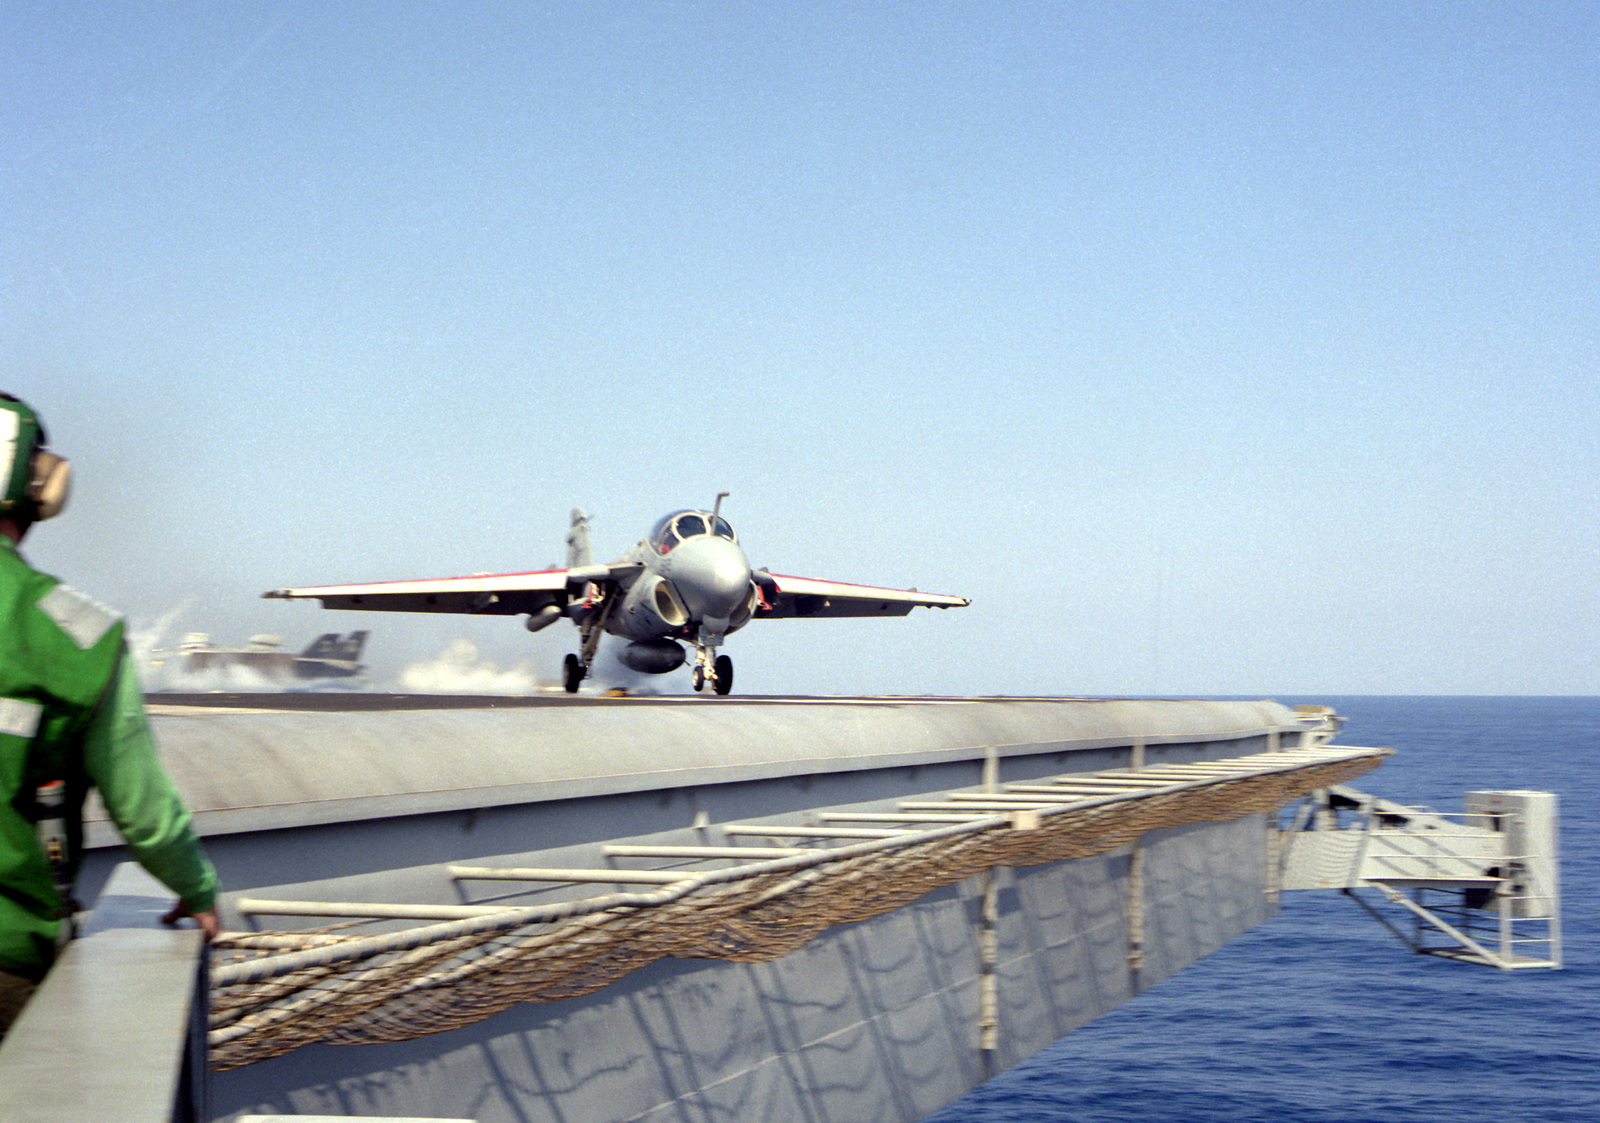 Flight deck crewmen watch from the deck edge as an A-6E Intruder aircraft is launched from the nuclear-powered aircraft carrier USS THEODORE ROOSEVELT (CVN-71) during Operation Deny Flight